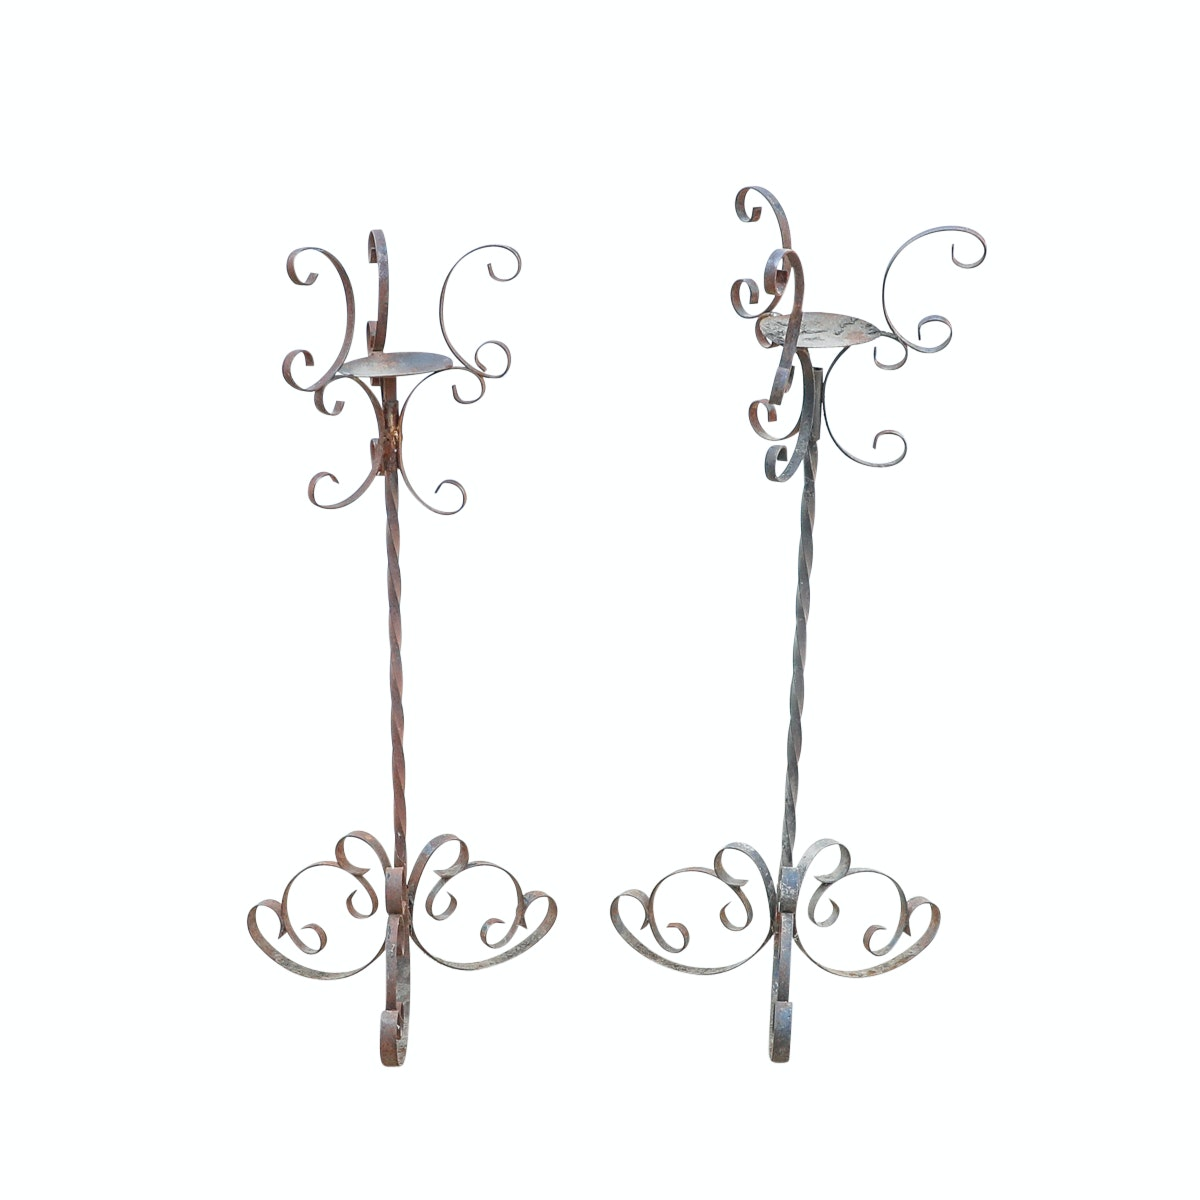 Outdoor Metal Candle Holders with Scrolling Accents